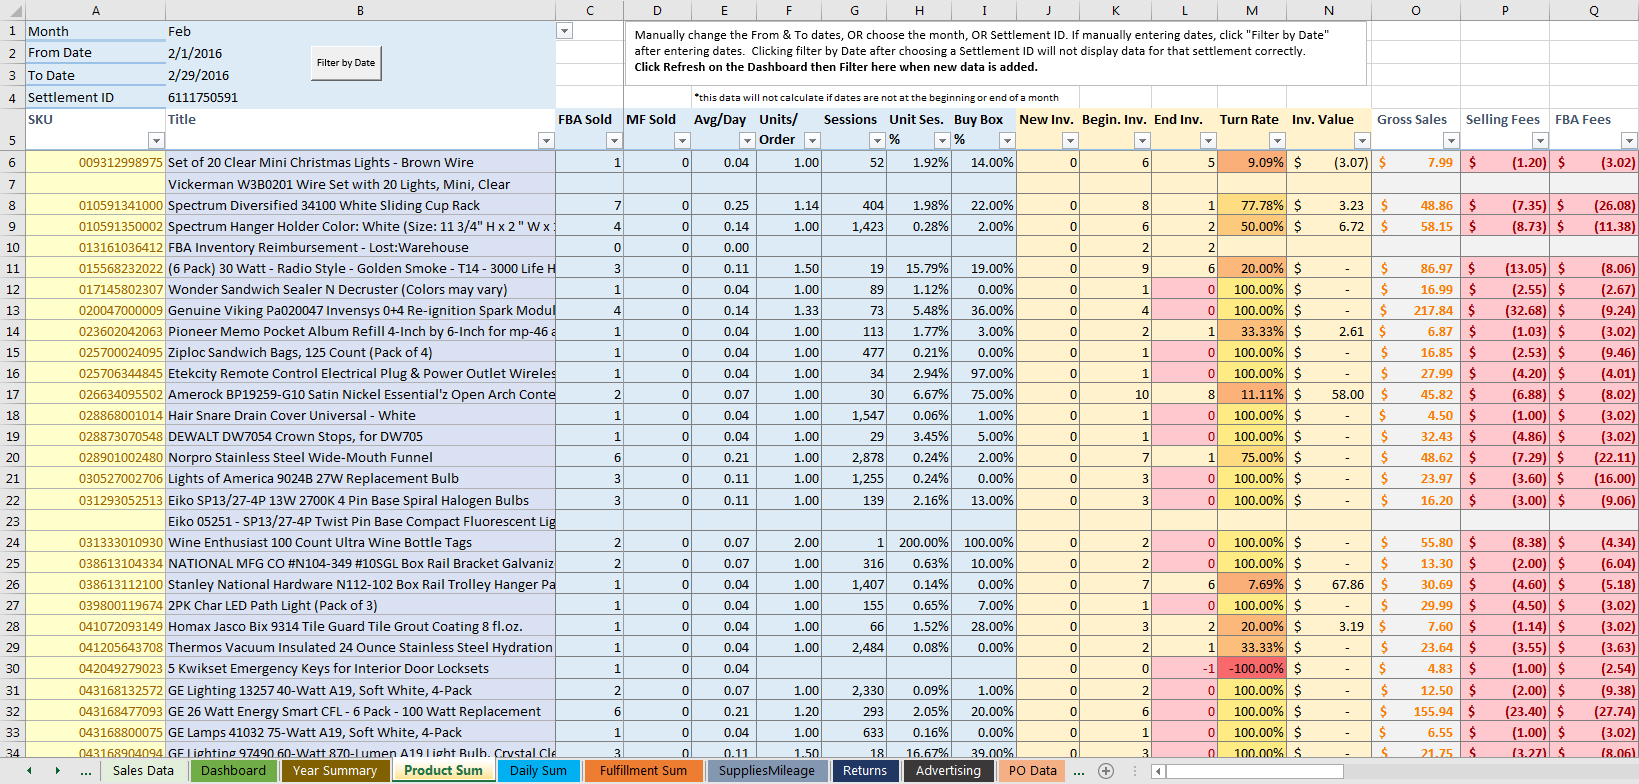 Amazon Profit Excel Spreadsheet In The Ultimate Amazon Fba Sales Spreadsheet V2 – Tools For Fba